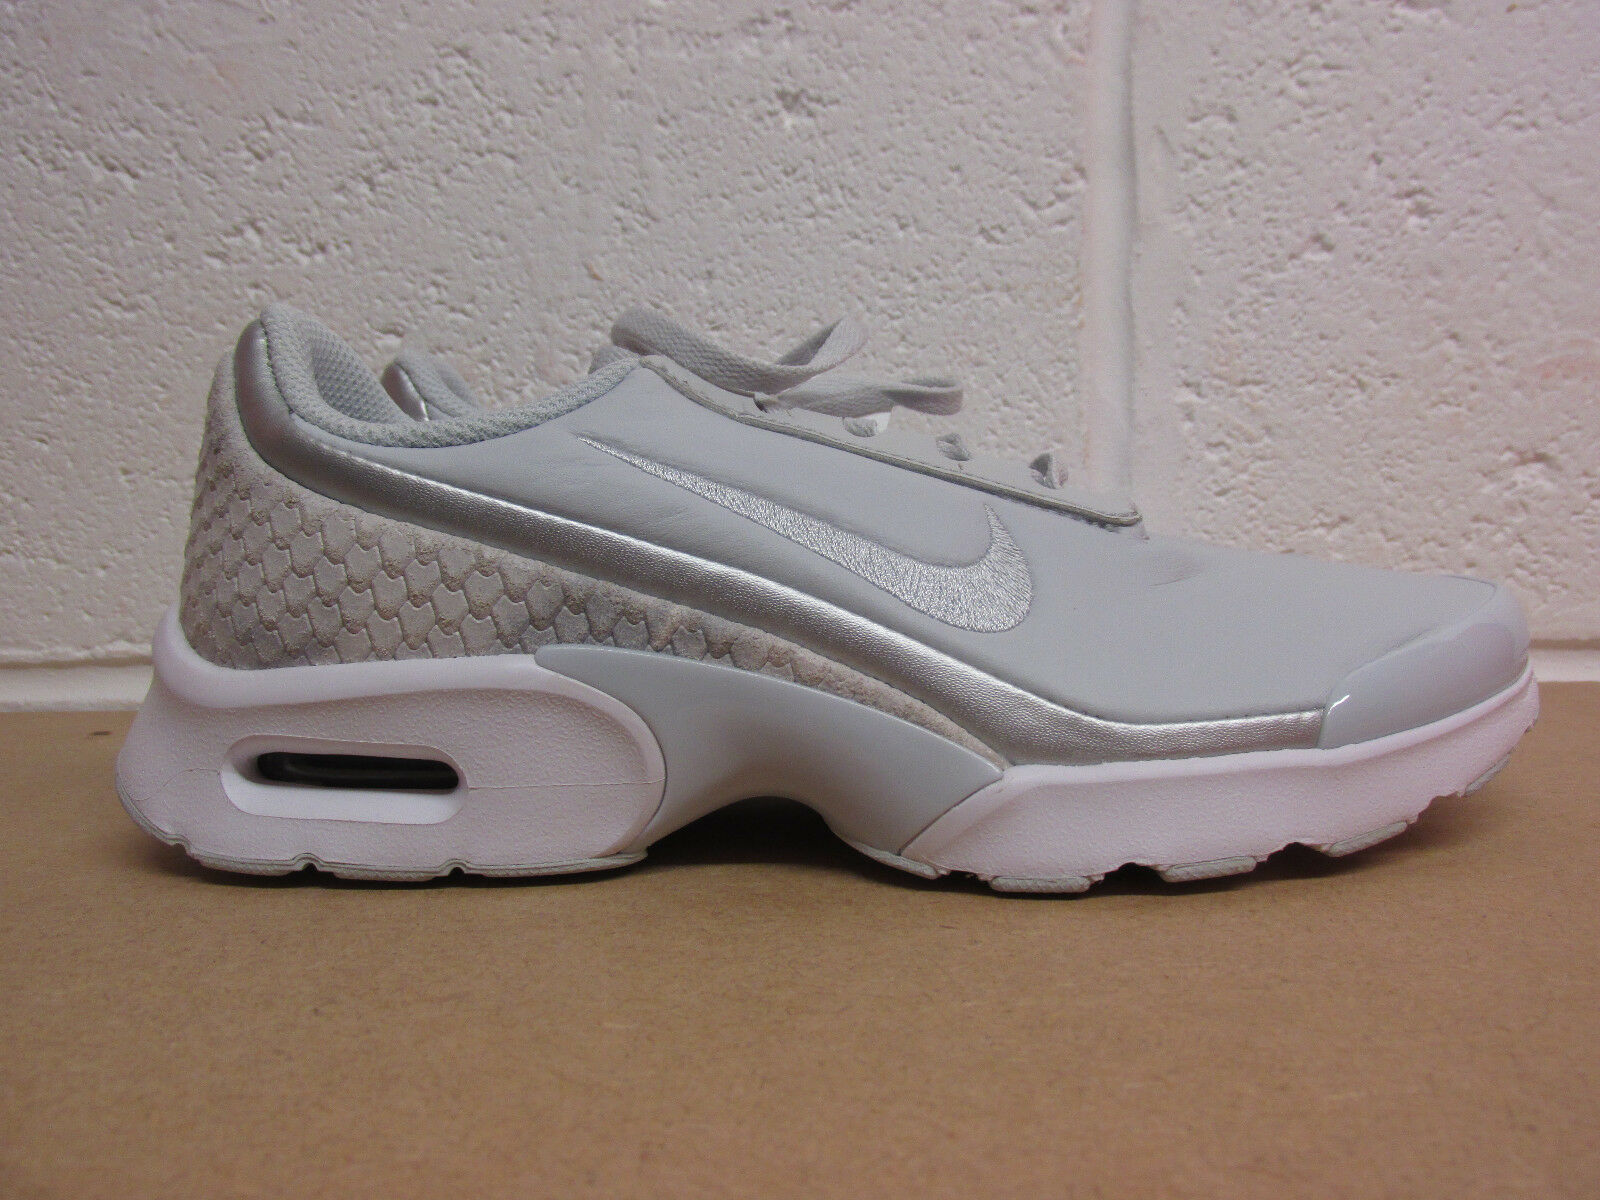 Nike air max jewell 917672 001 womens trainers sneakers shoes SAMPLE